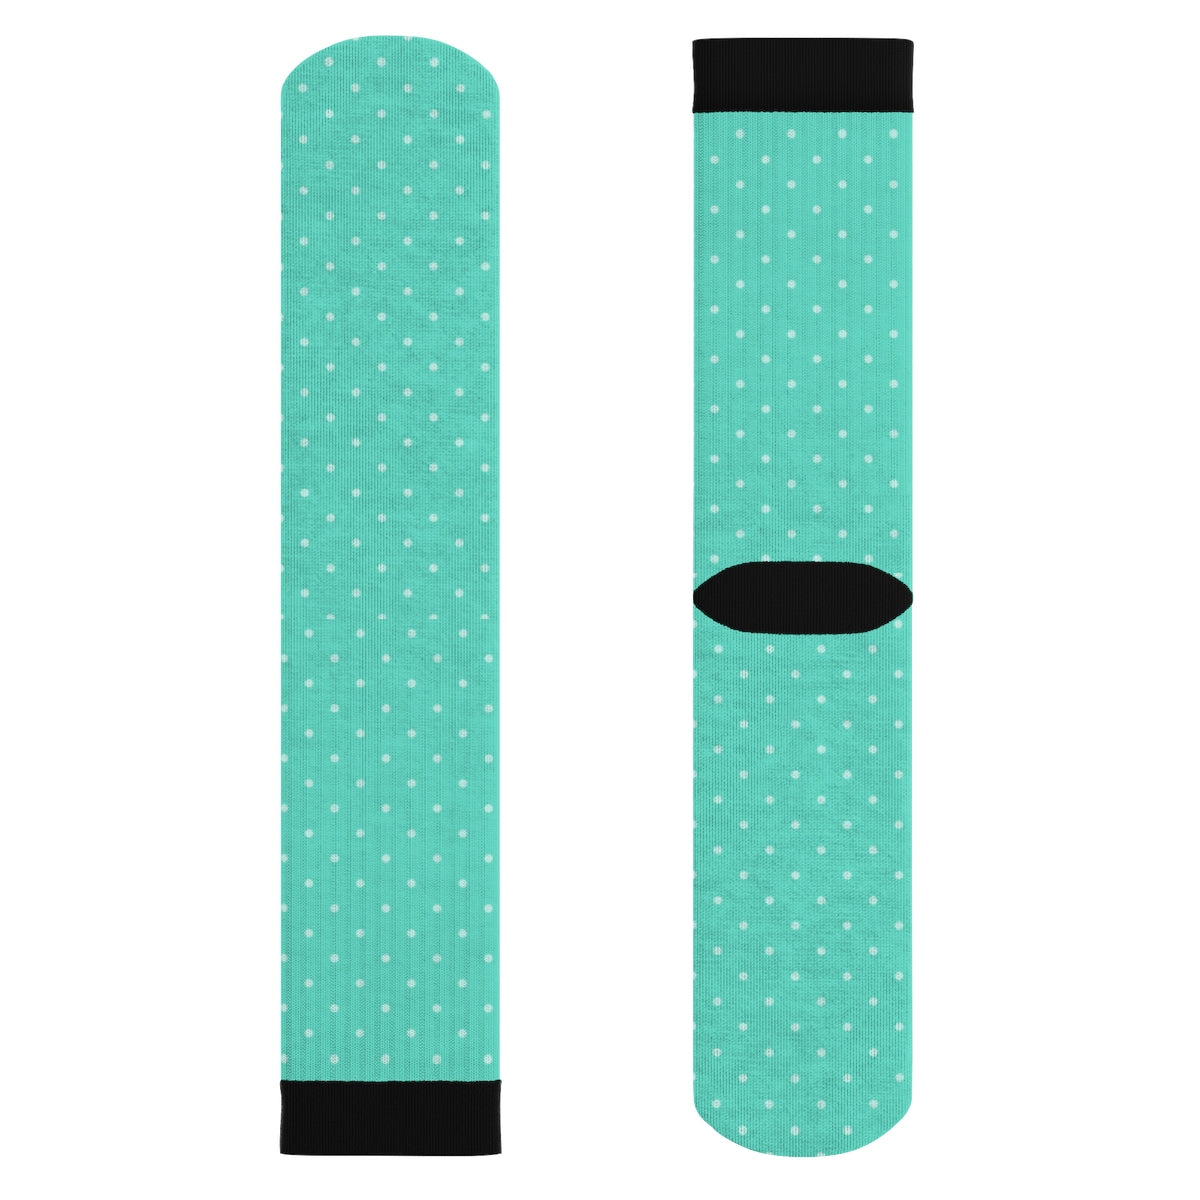 Teal Polka Dot Tube Socks All Over Prints - Polka Dotted All The Things Boutique